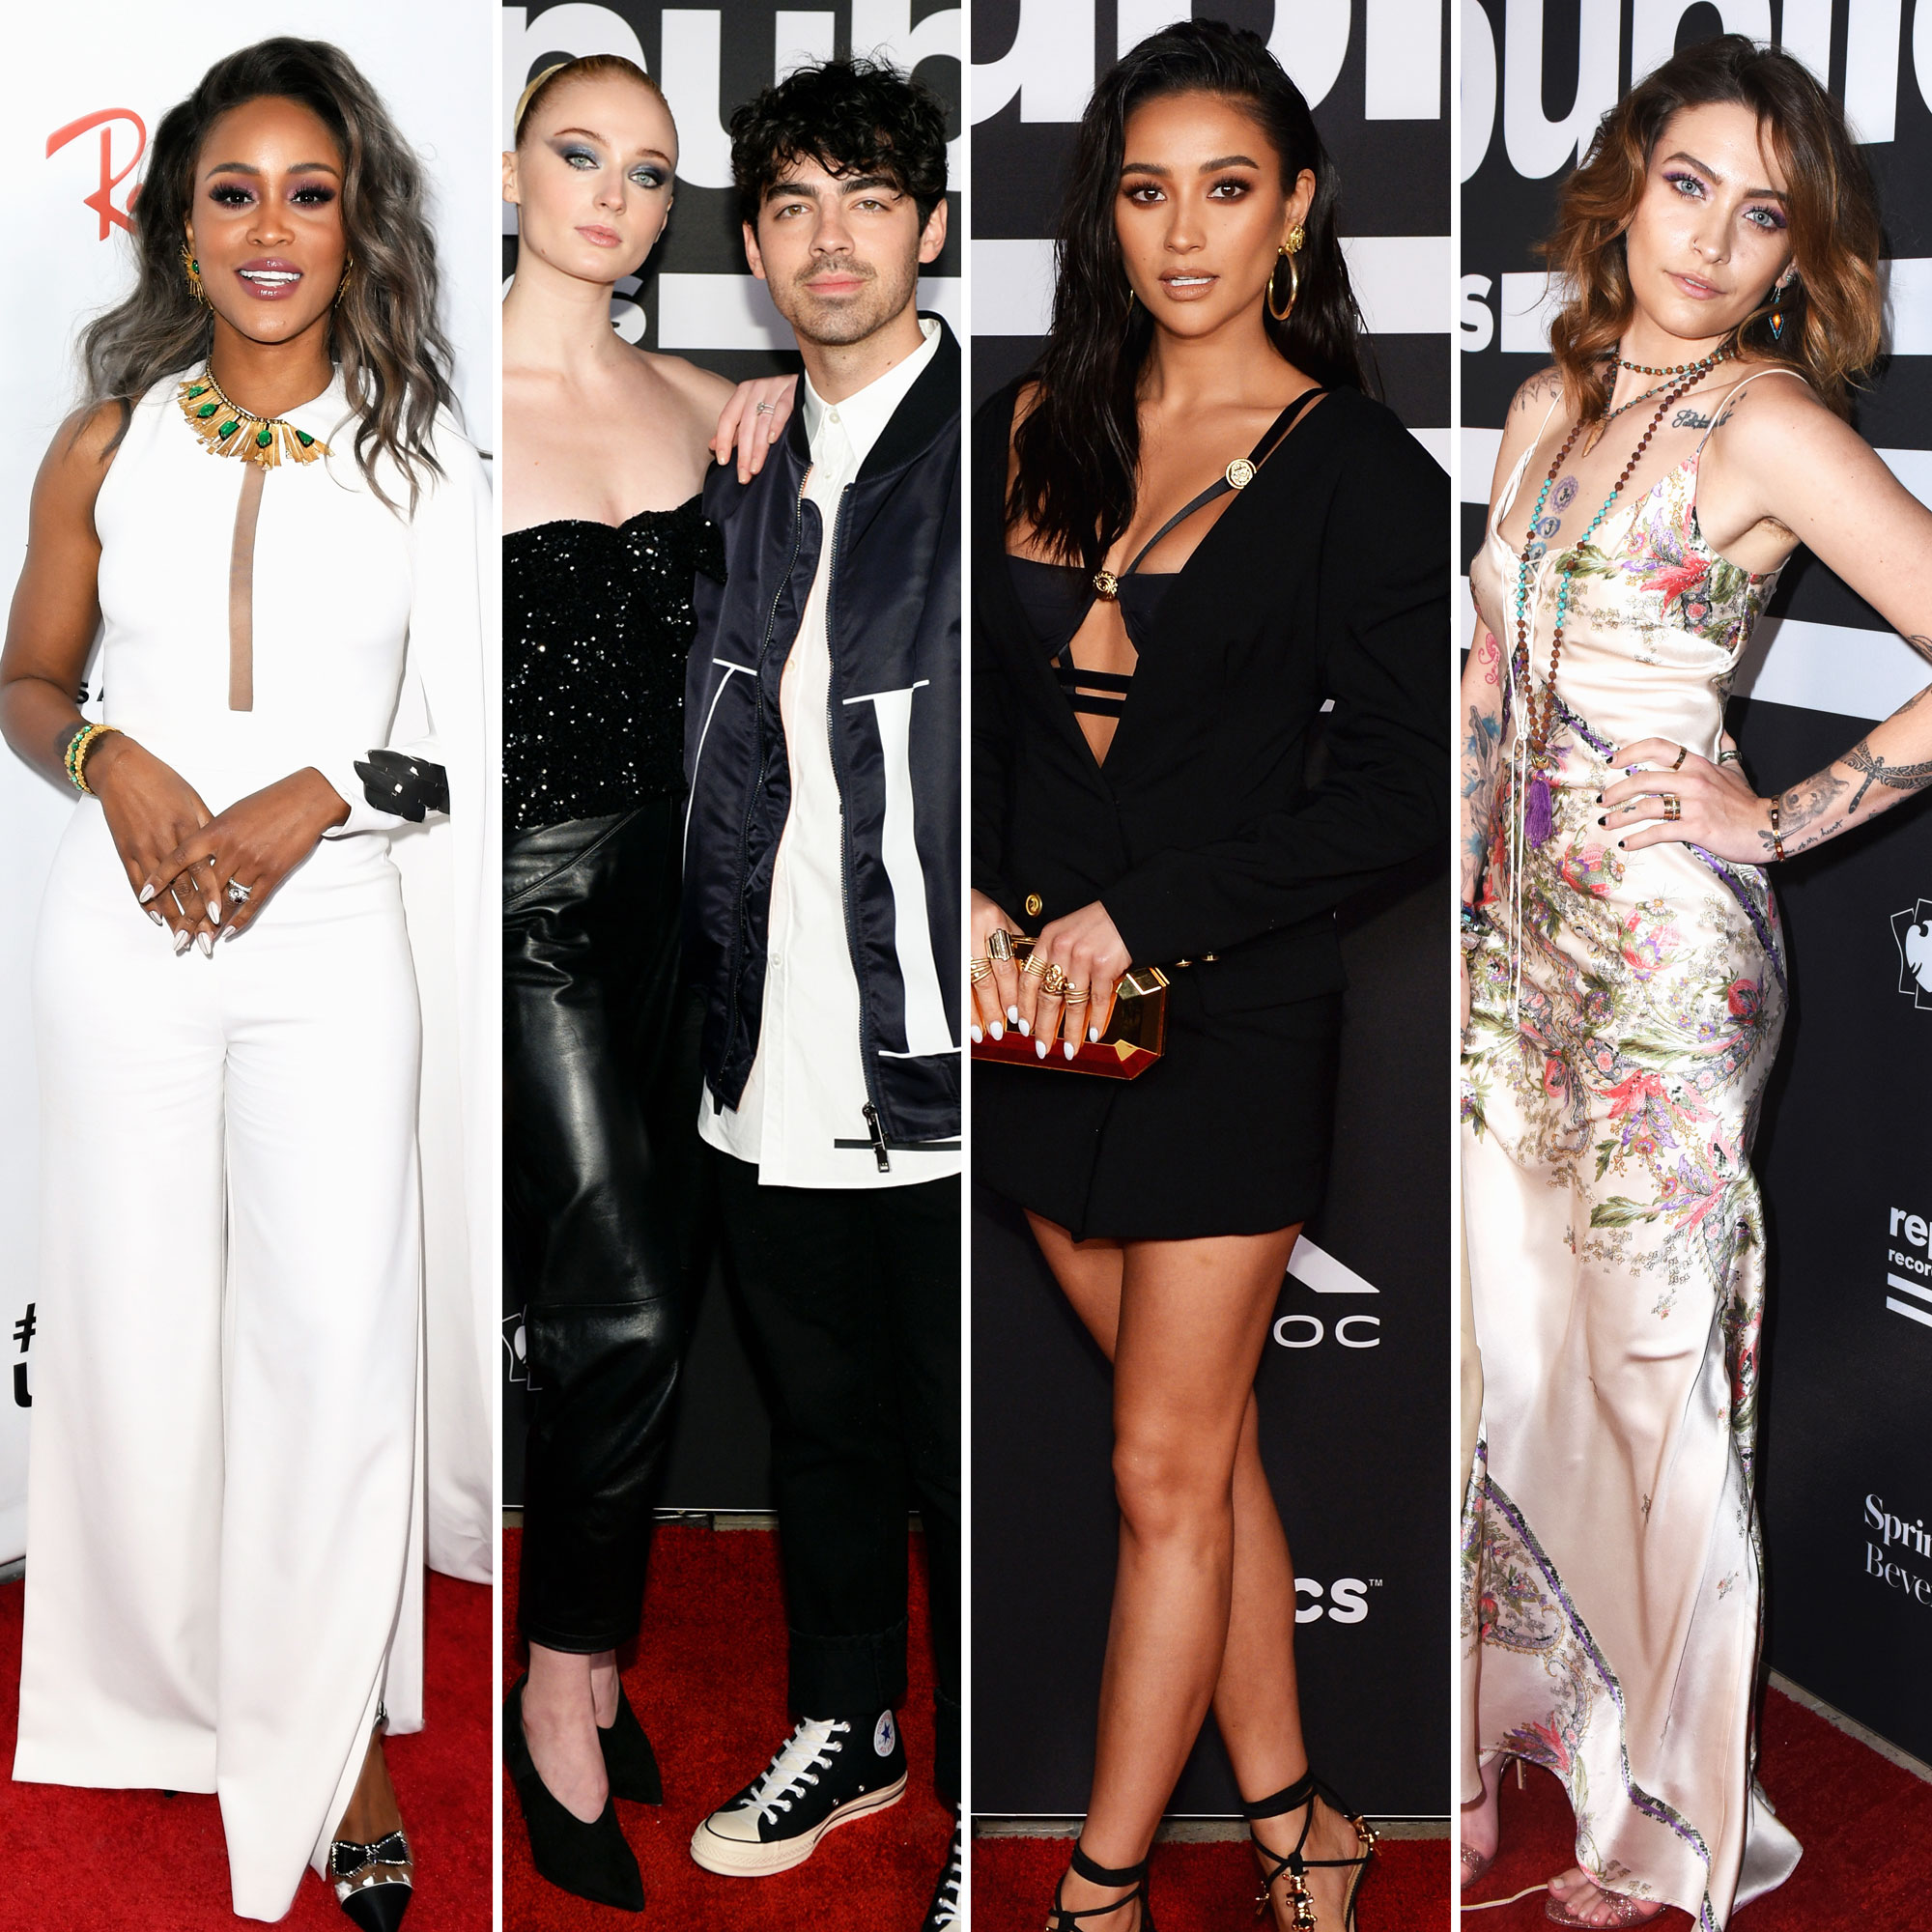 Eve, Sophie Turner, Joe Jonas, Shay Mitchell and Paris Jackson grammys 2019 - Eve, Sophie Turner, Joe Jonas, Shay Mitchell and Paris Jackson